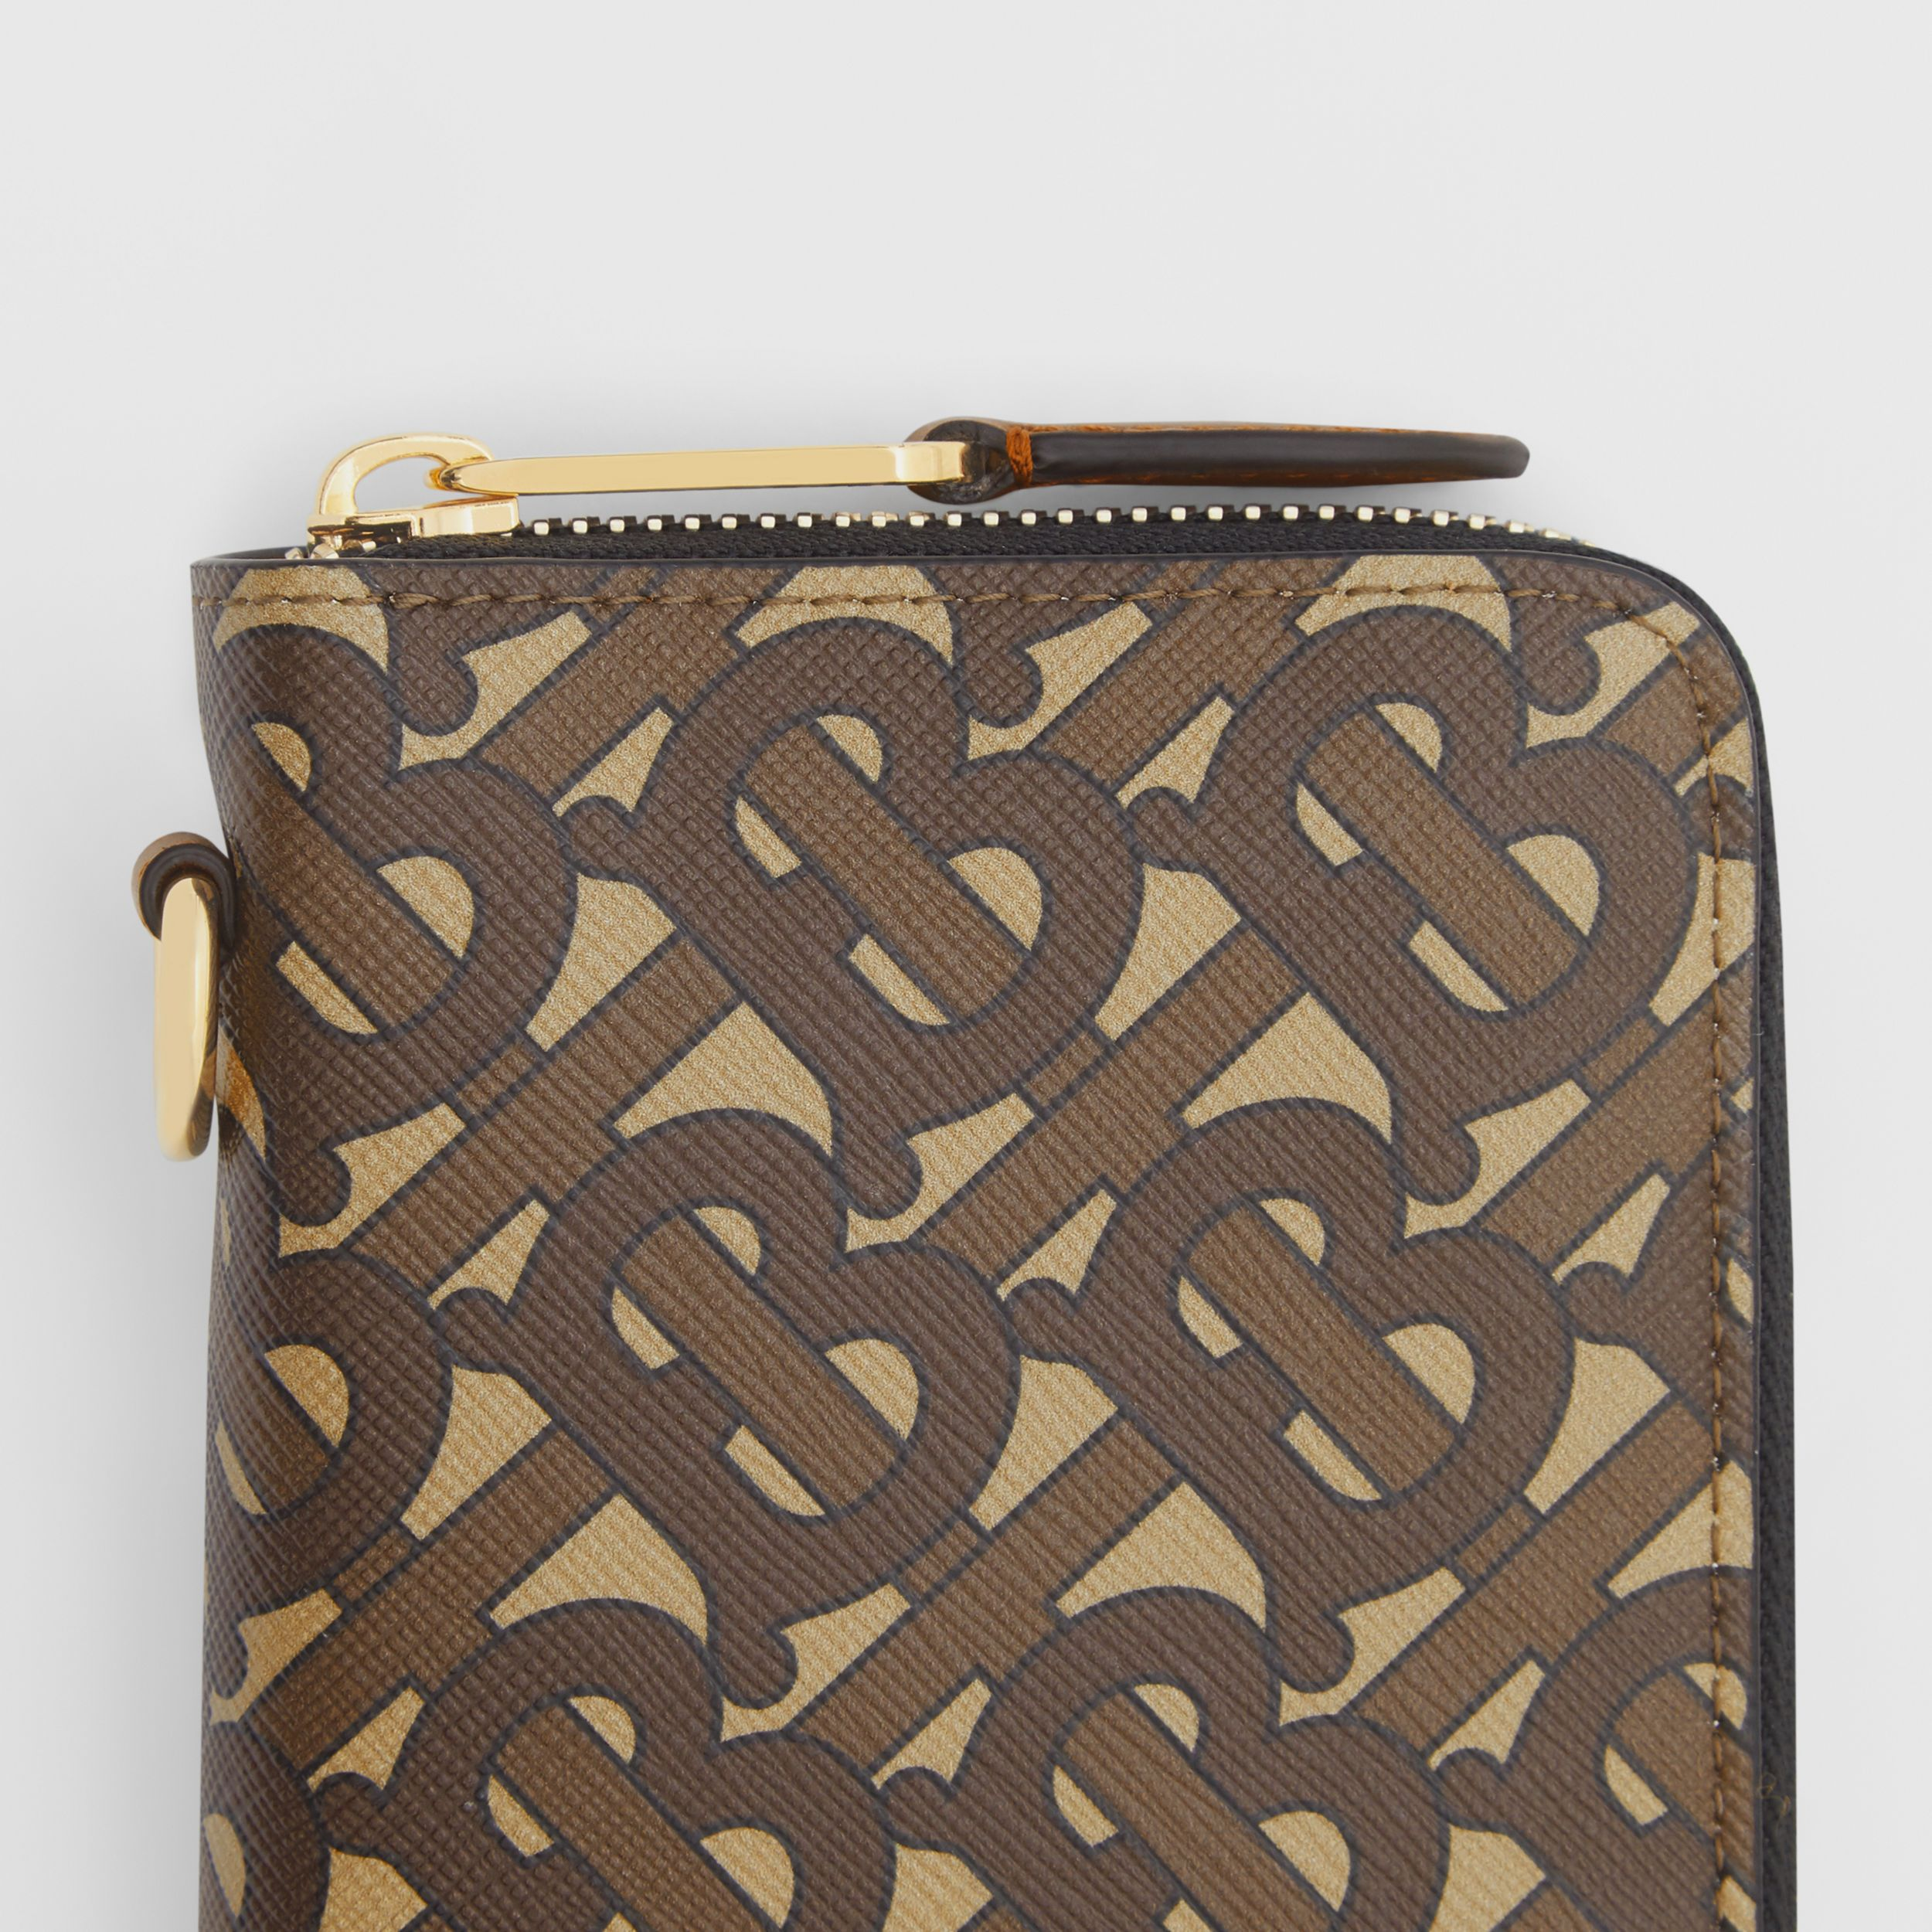 Monogram Print E-canvas Phone Wallet in Bridle Brown - Men | Burberry - 2